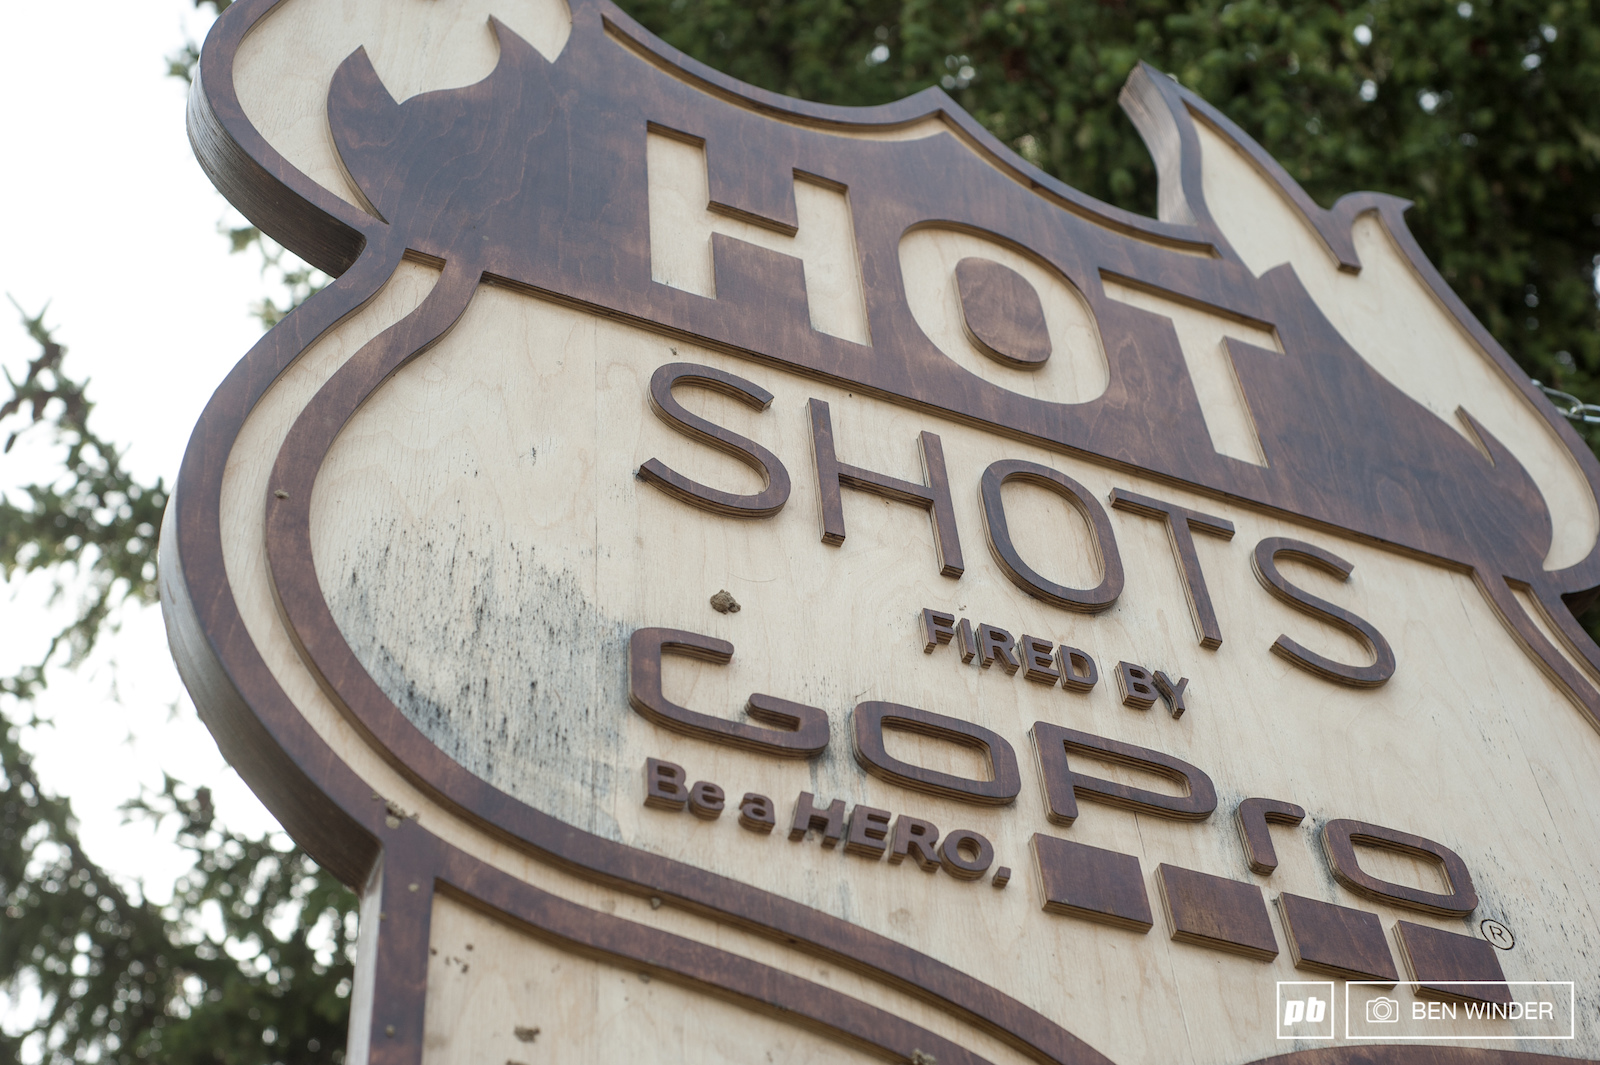 A late-afternoon last dash down Hot Shots.